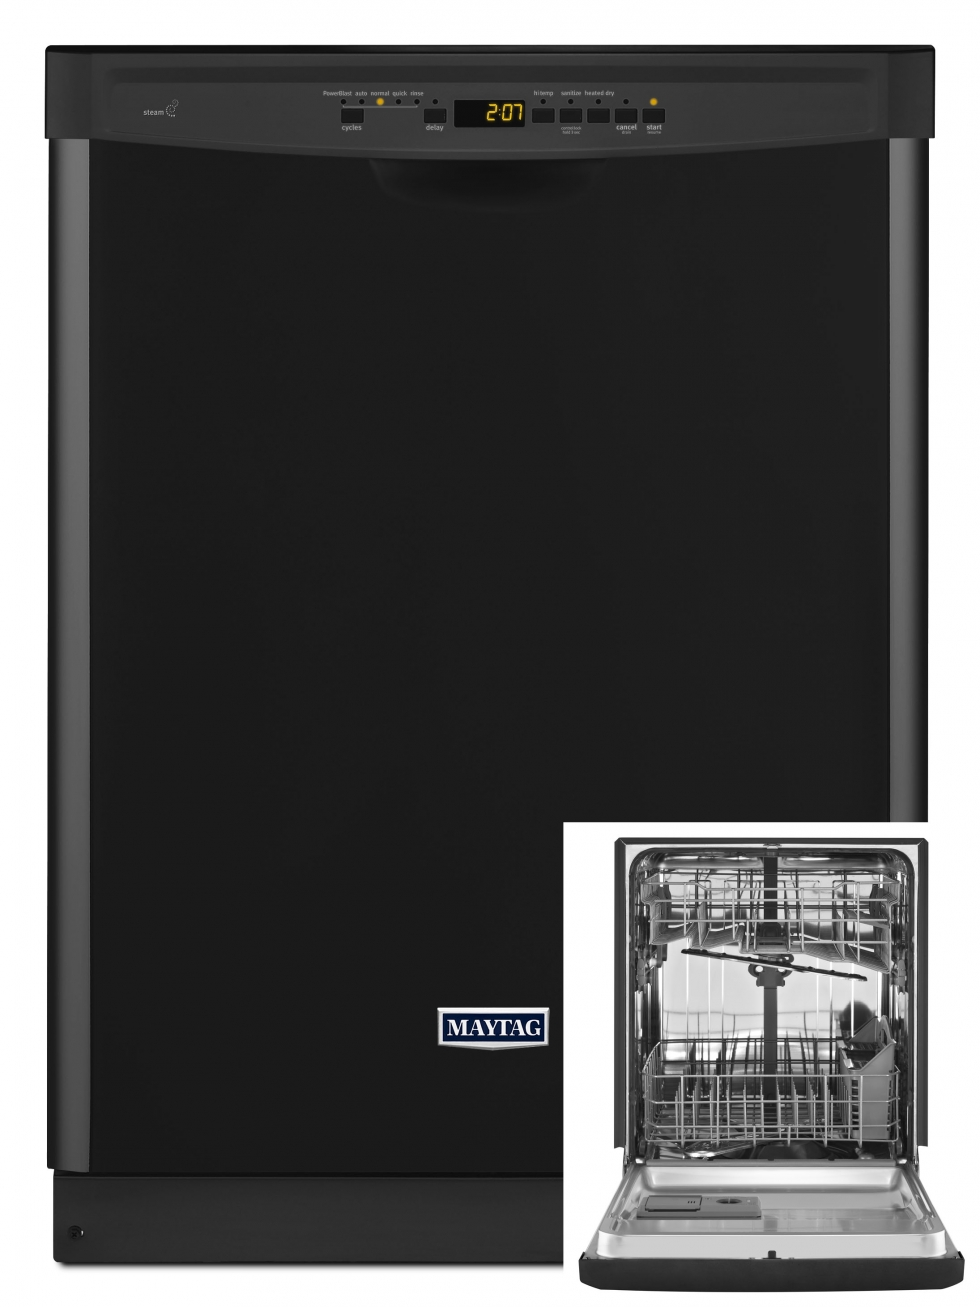 Maytag Stainless Steel Tub Dishwasher Black